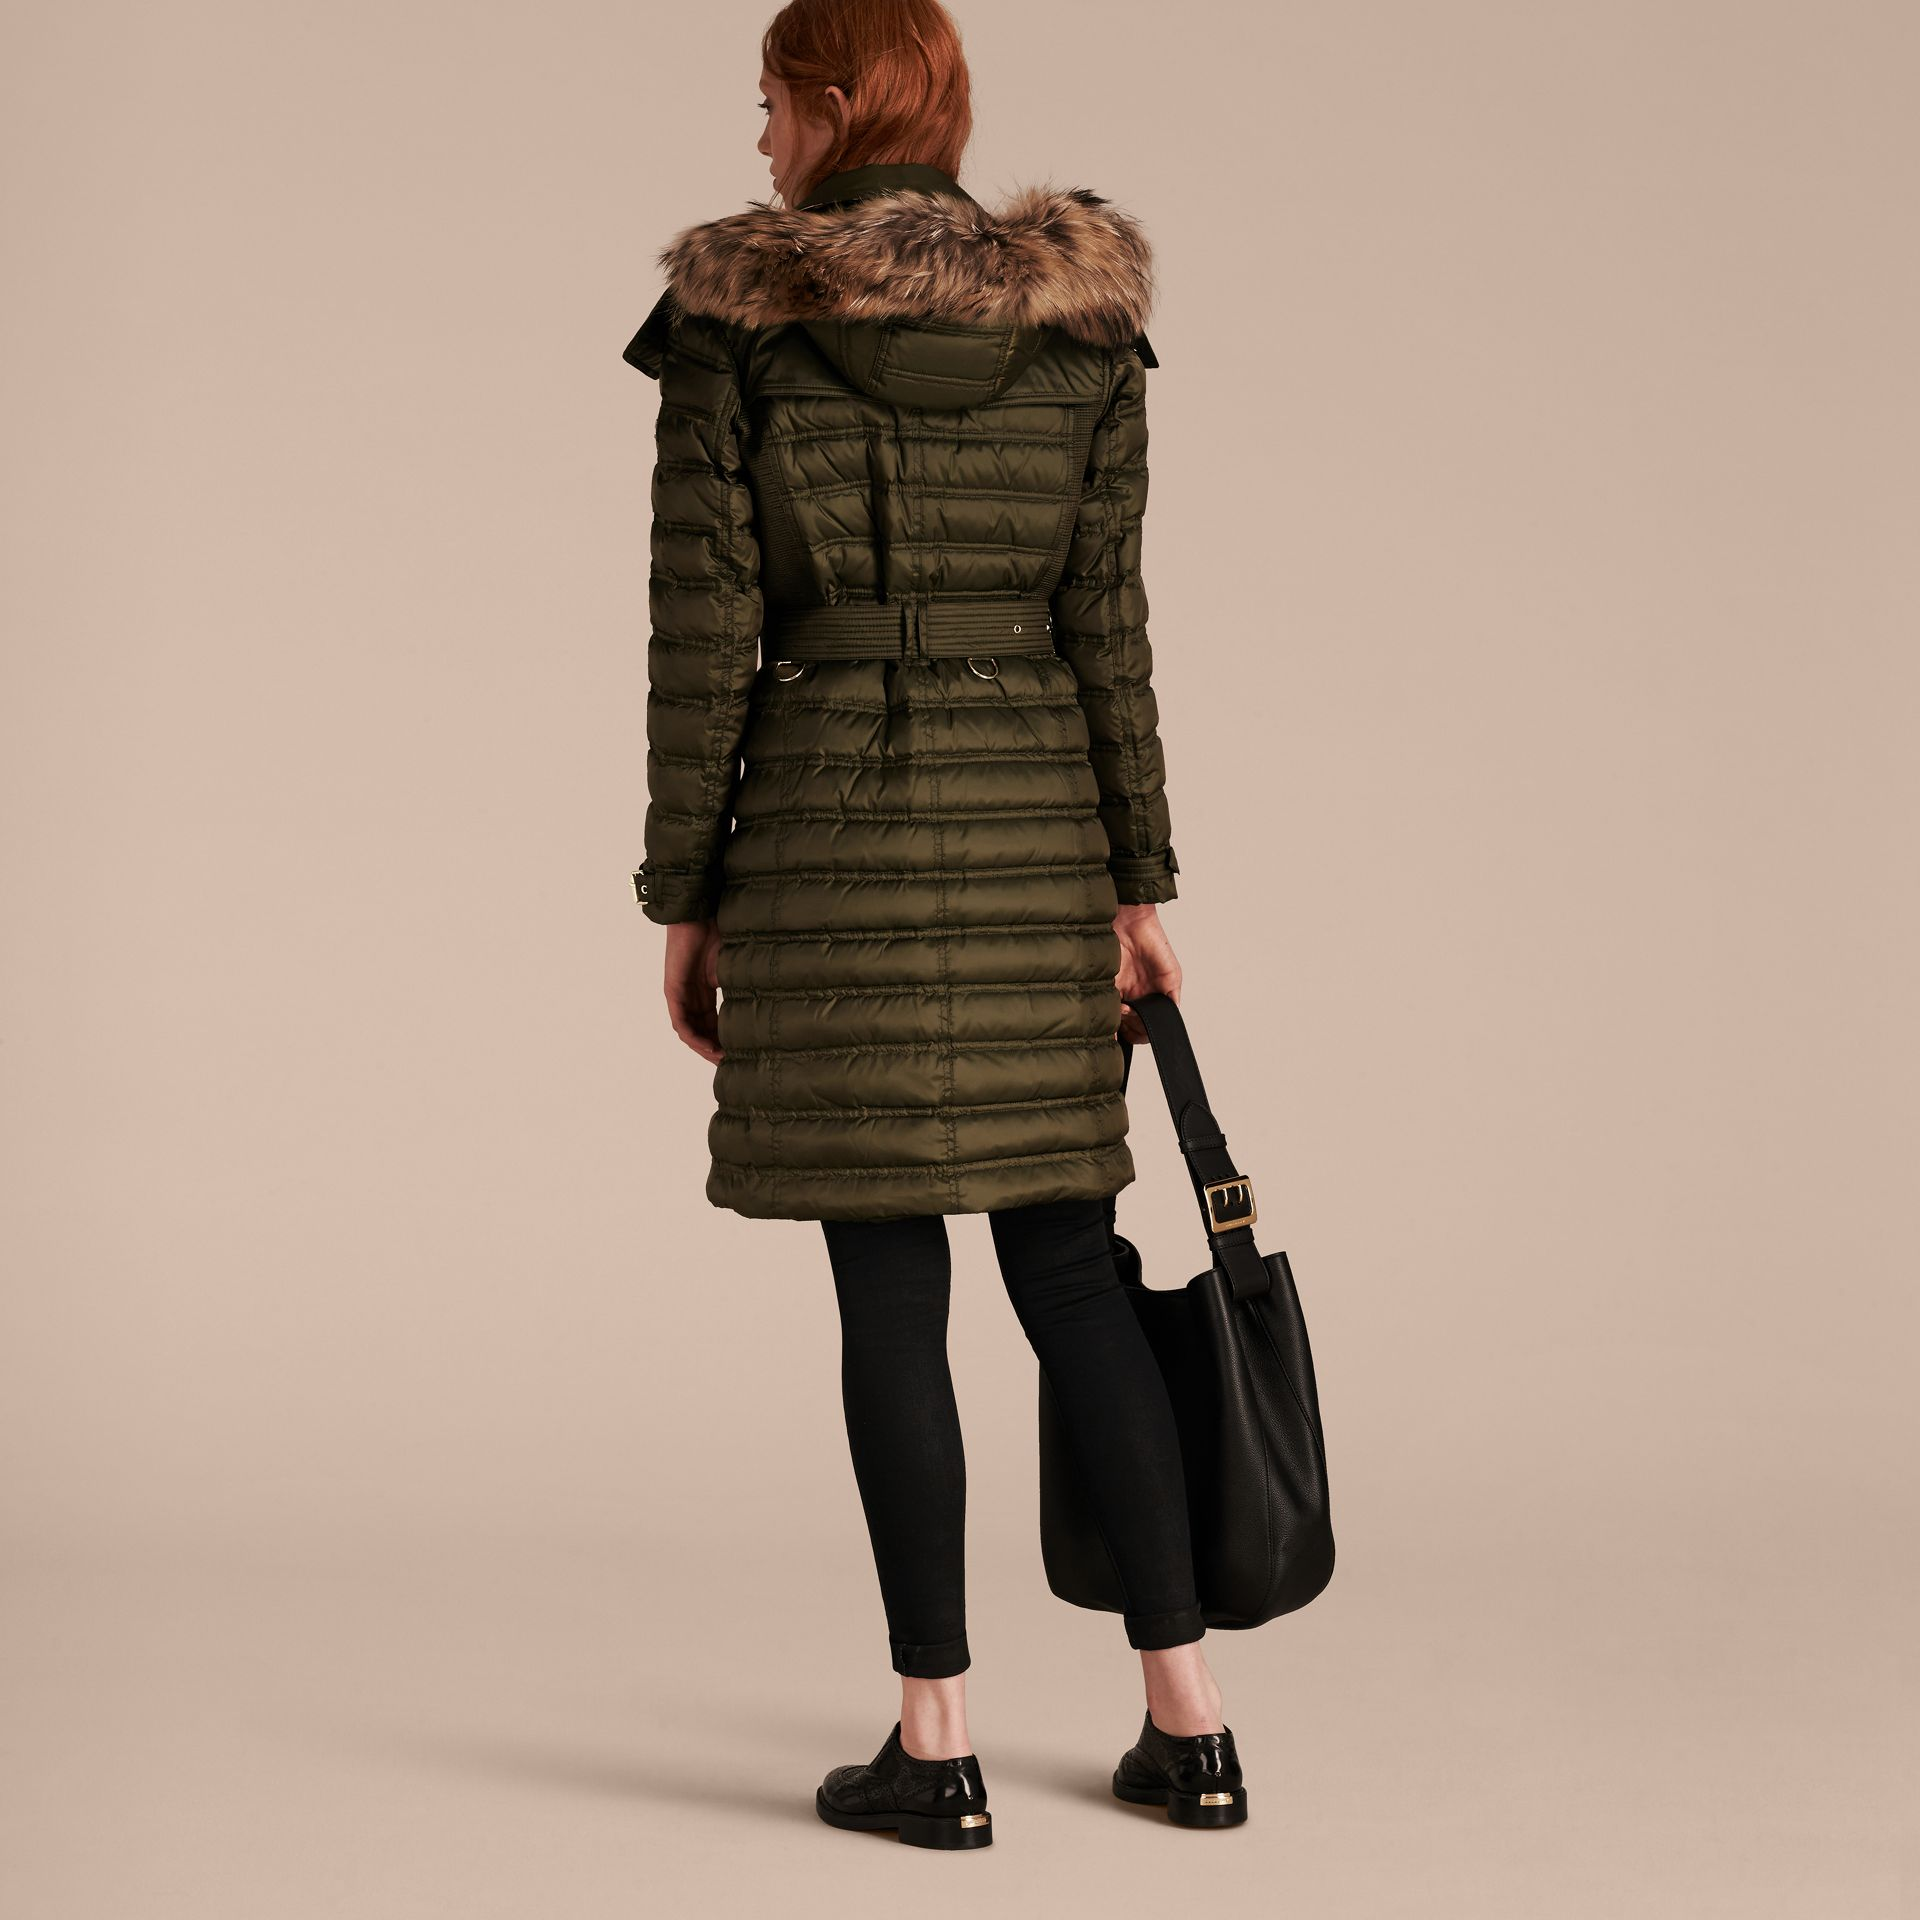 Dark olive Down-Filled Puffer Coat with Fur Trim Dark Olive - gallery image 3